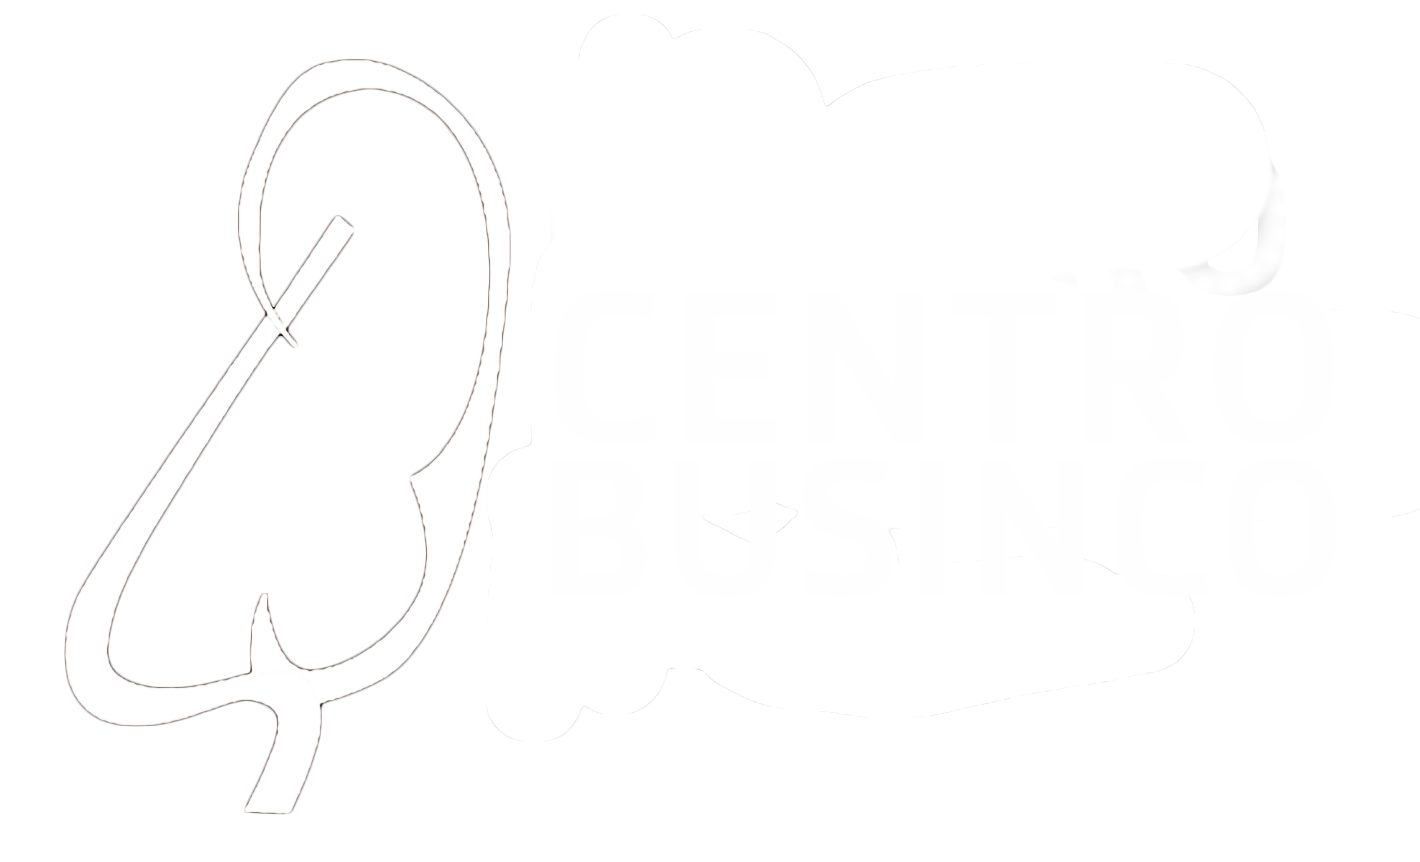 Centro Businco